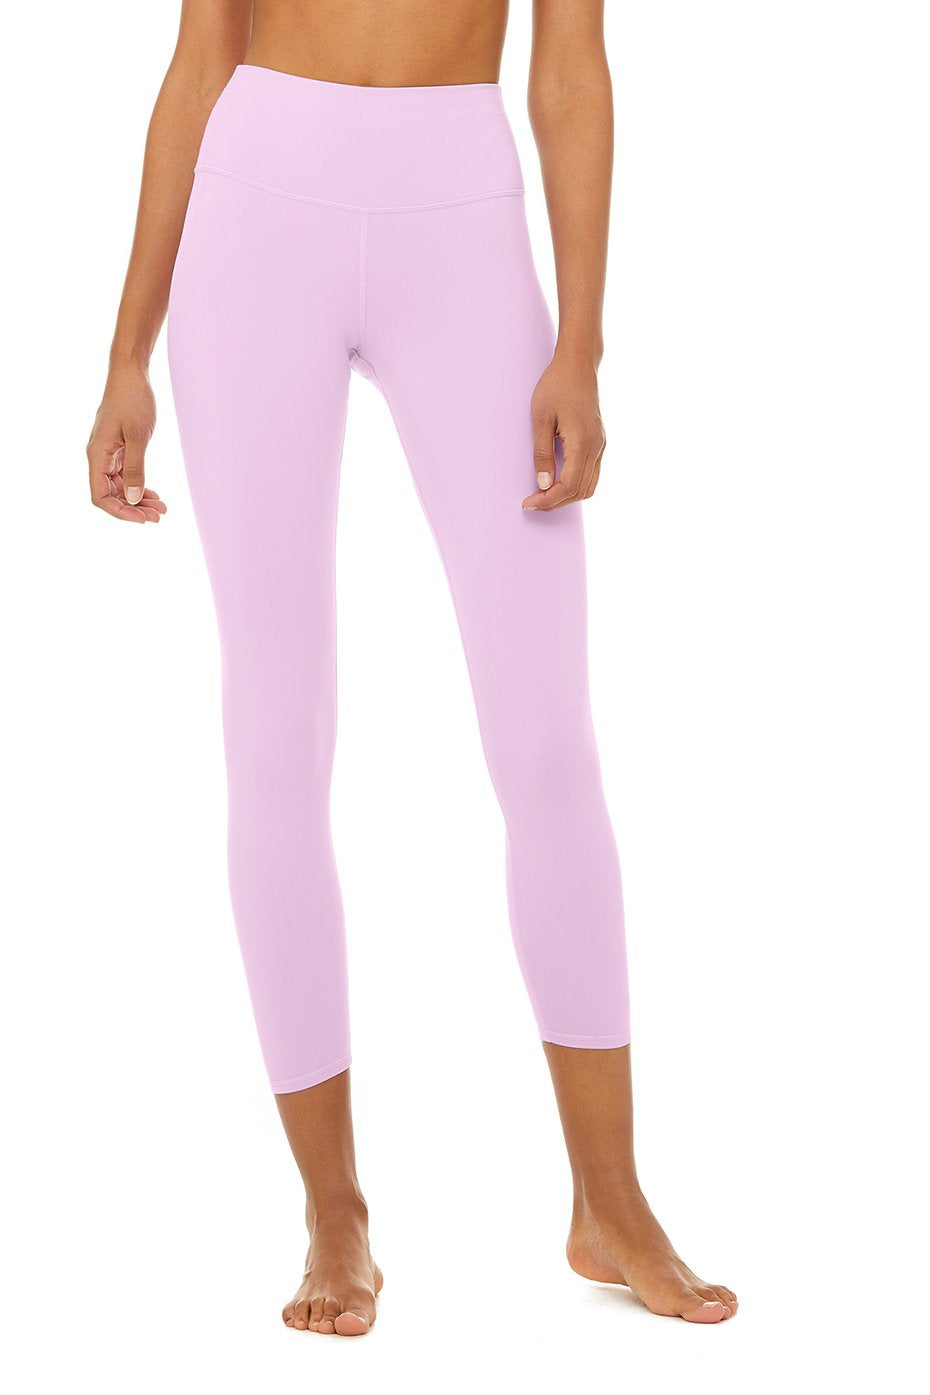 Alo Yoga SMALL 7/8 High-Waist Airbrush Legging - Ultraviolet